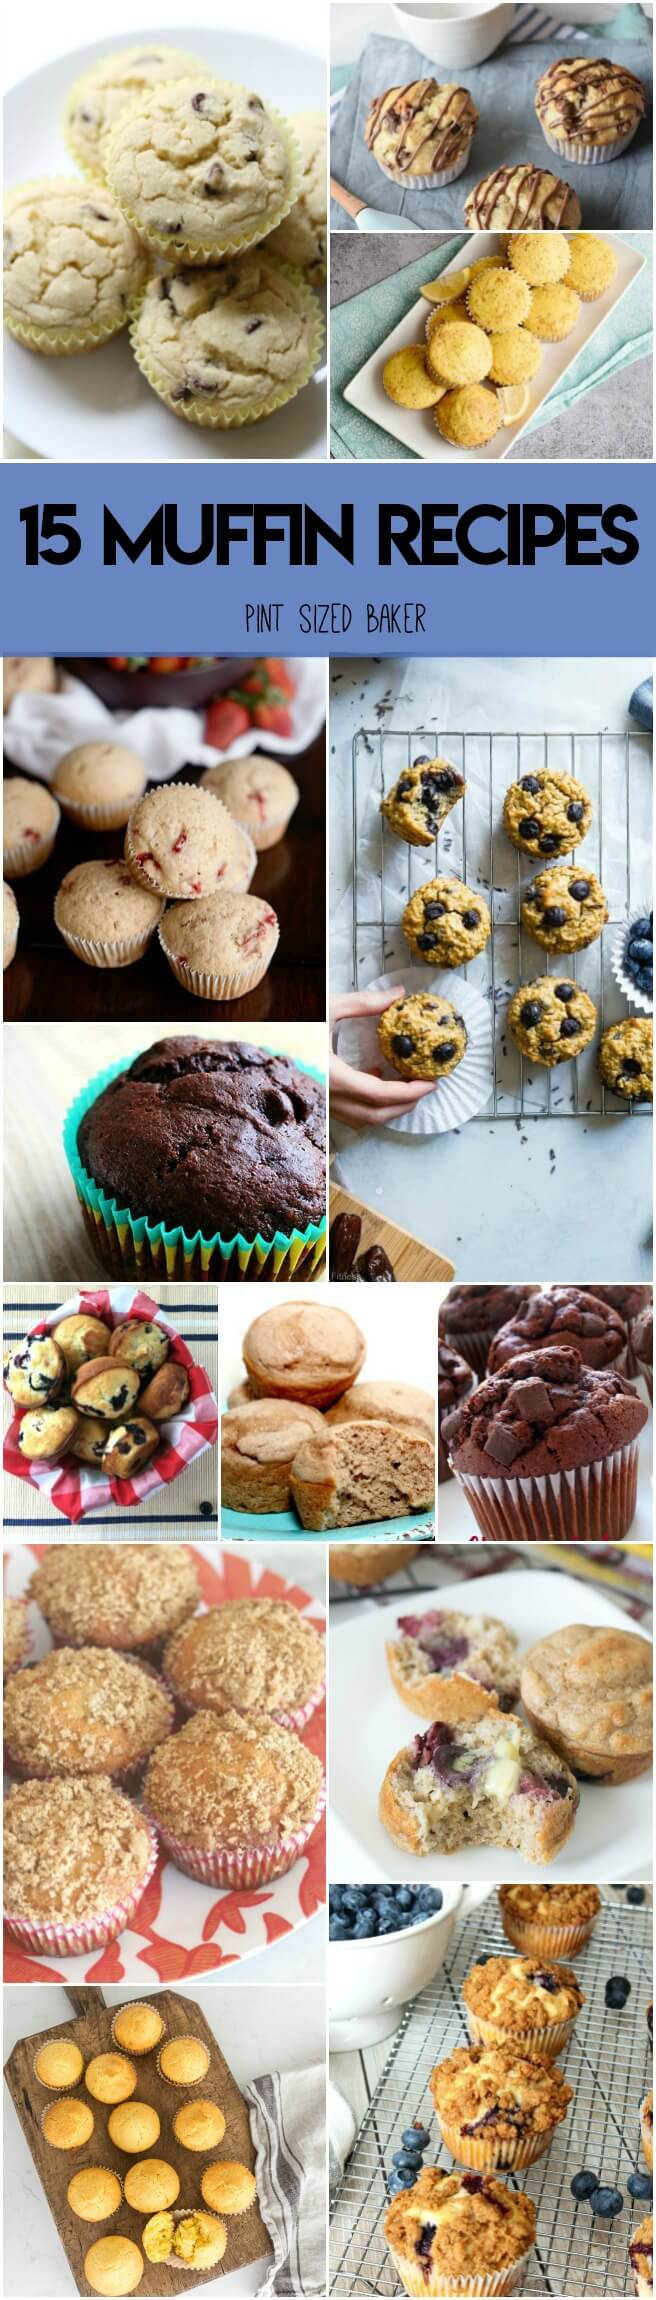 Send your kids back to school with a freezer full of homemade muffins ready for them. Here's 15 Muffin Recipes to make in advance and fuel up the kids.